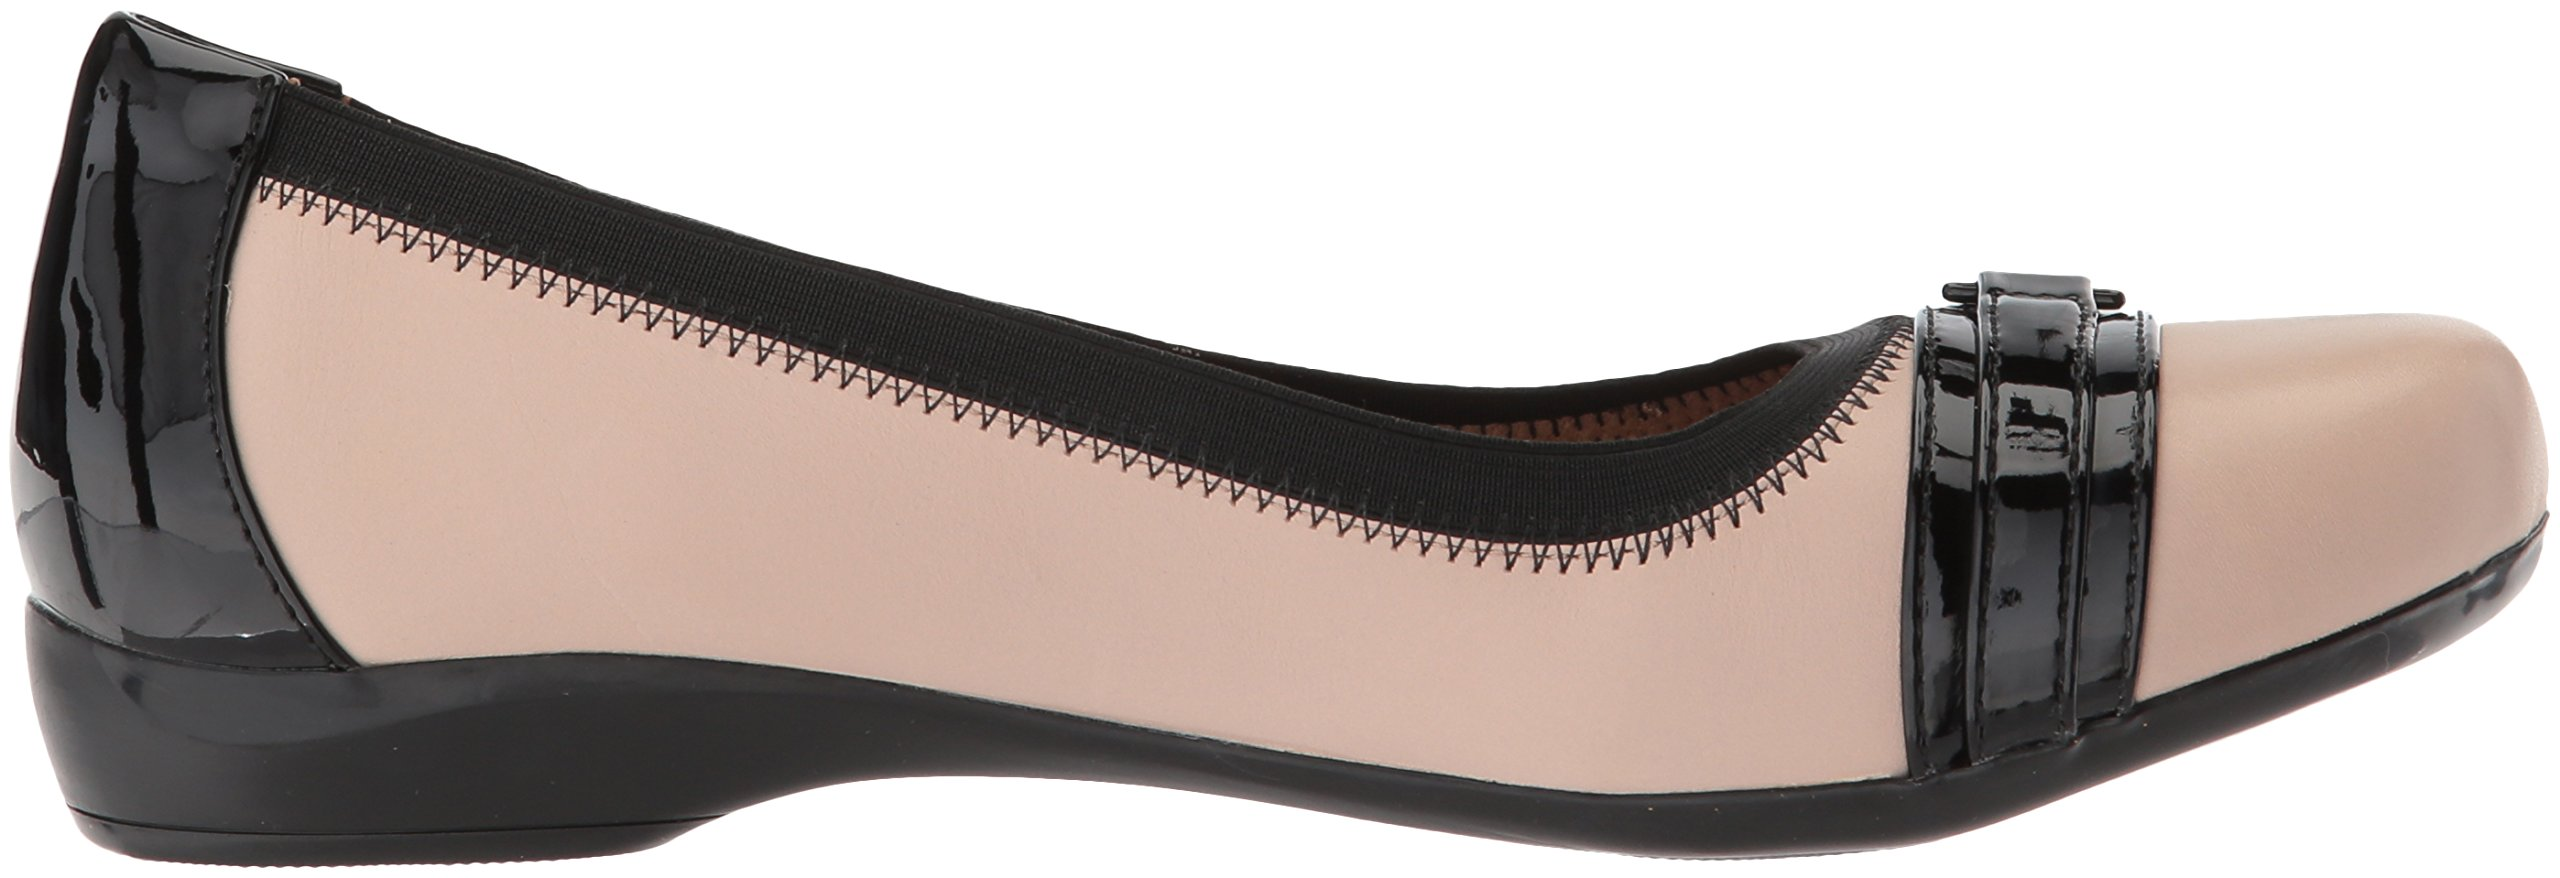 CLARKS Women's Kinzie Light Loafer Flat, Cream Leather/Synthetic Patent, 12 Medium US by CLARKS (Image #7)